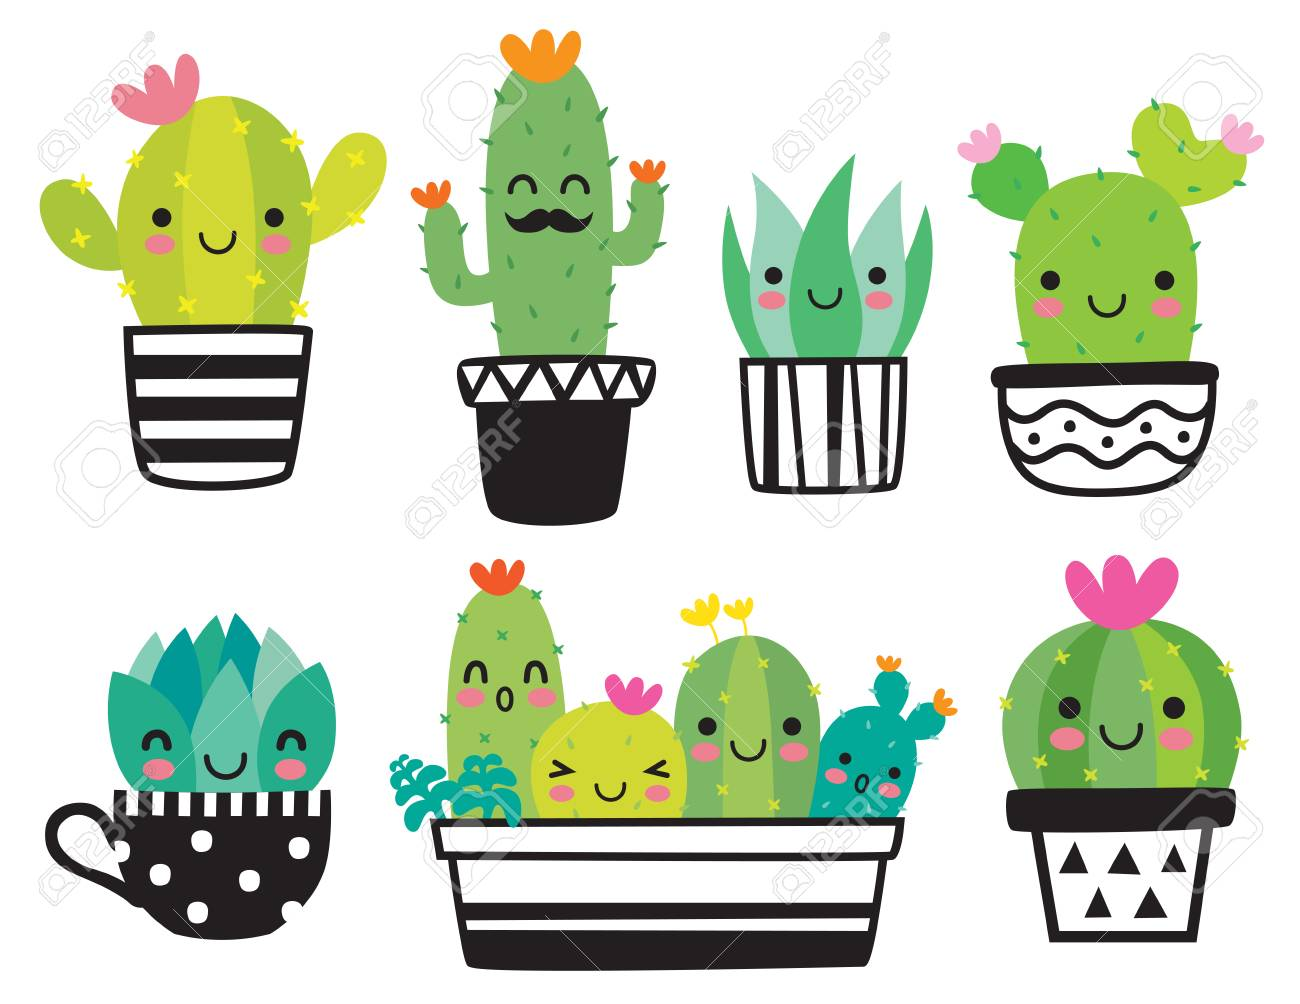 Cute Succulent Or Cactus Plant With Happy Face Vector Illustration Royalty Free Cliparts Vectors And Stock Illustration Image 94820559